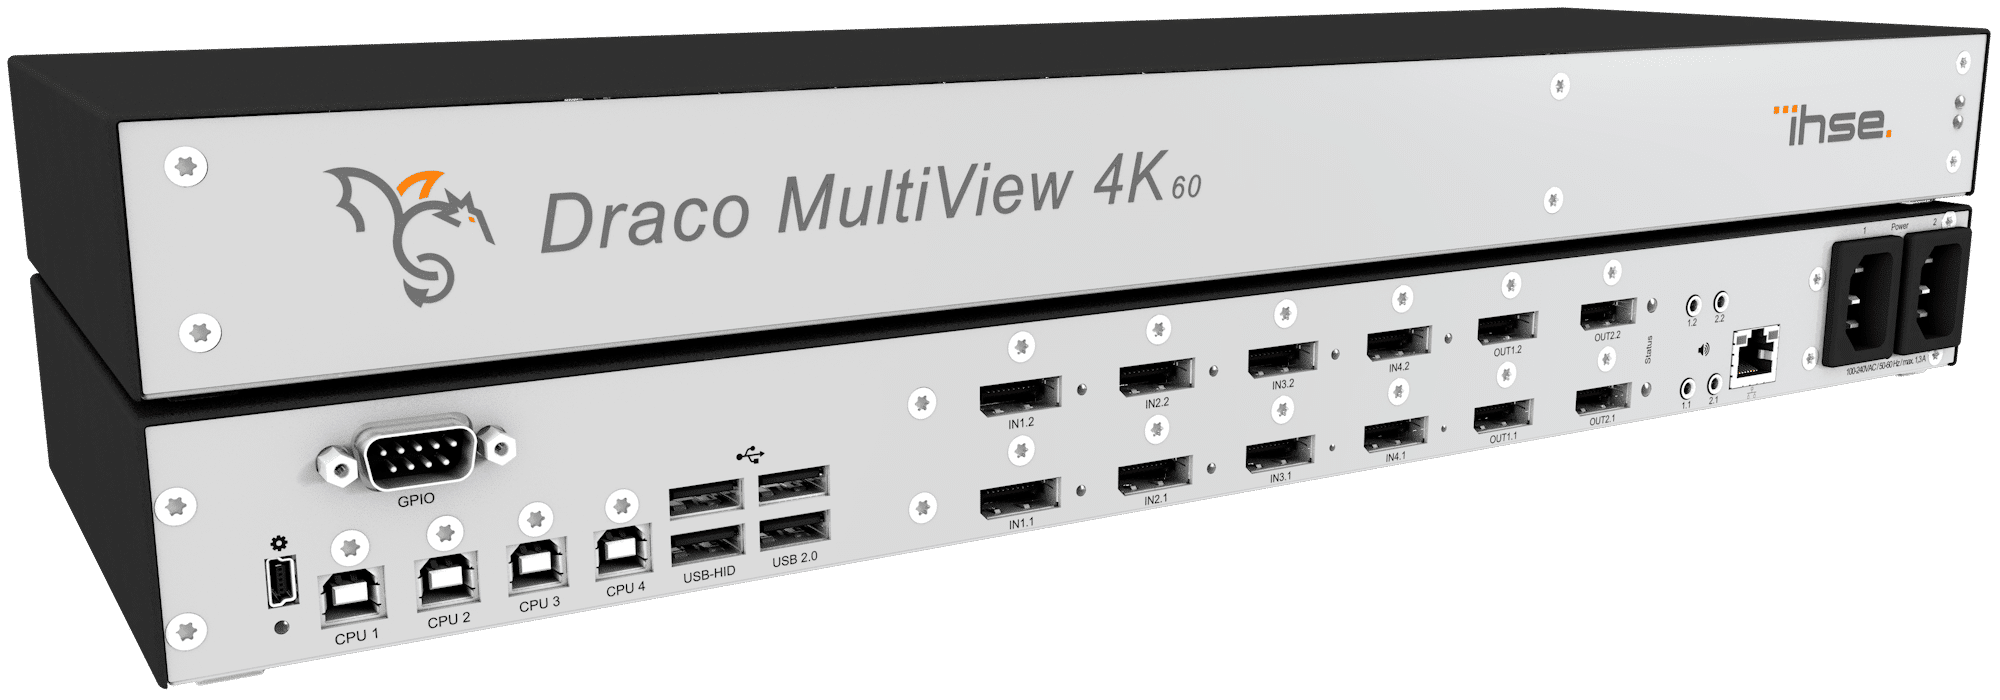 IHSE releases it's new Draco MultiView4K60